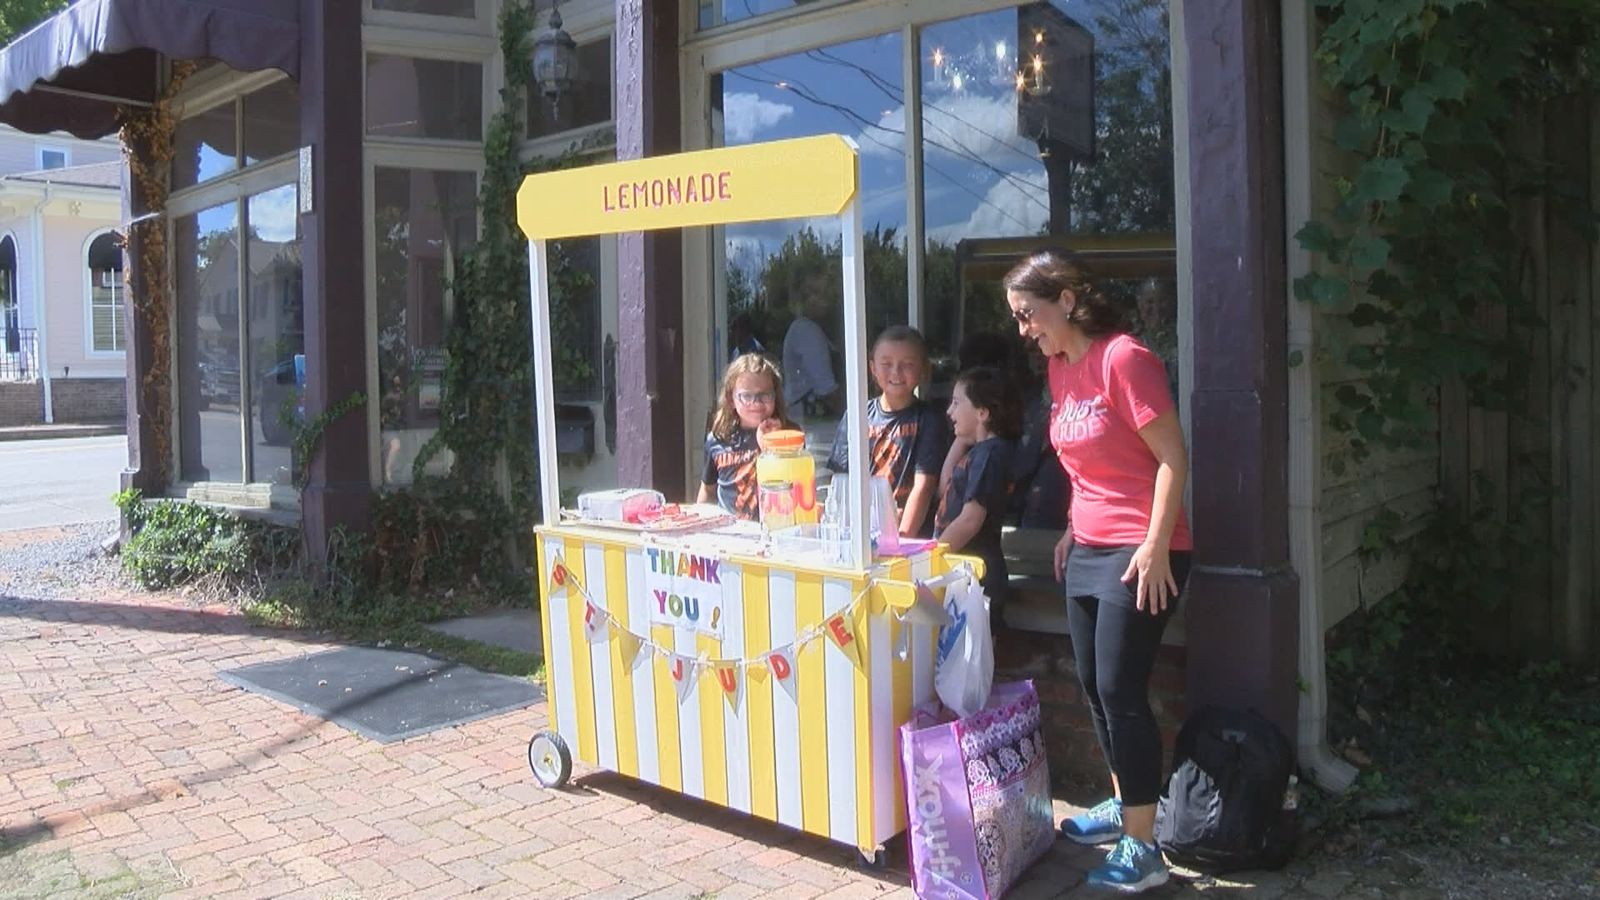 It was Ellee's idea to hold a lemonade stand fundraiser. (Angelique Arintok, WCYB)